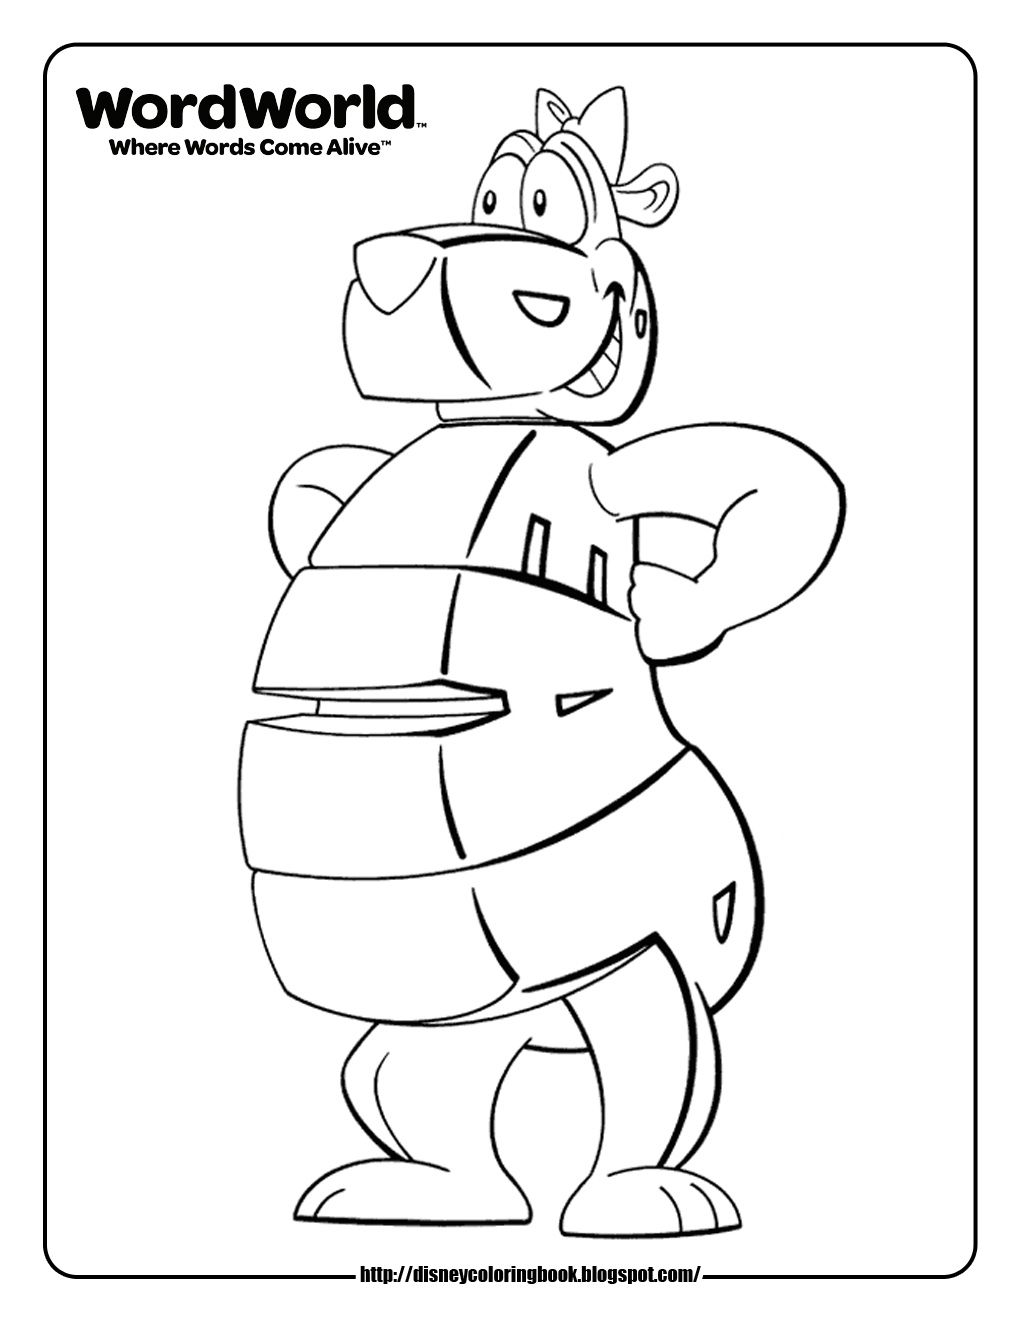 Coloring sheets with words - Word World Word World Bear Coloring Pages Copy And Paste This Site Not